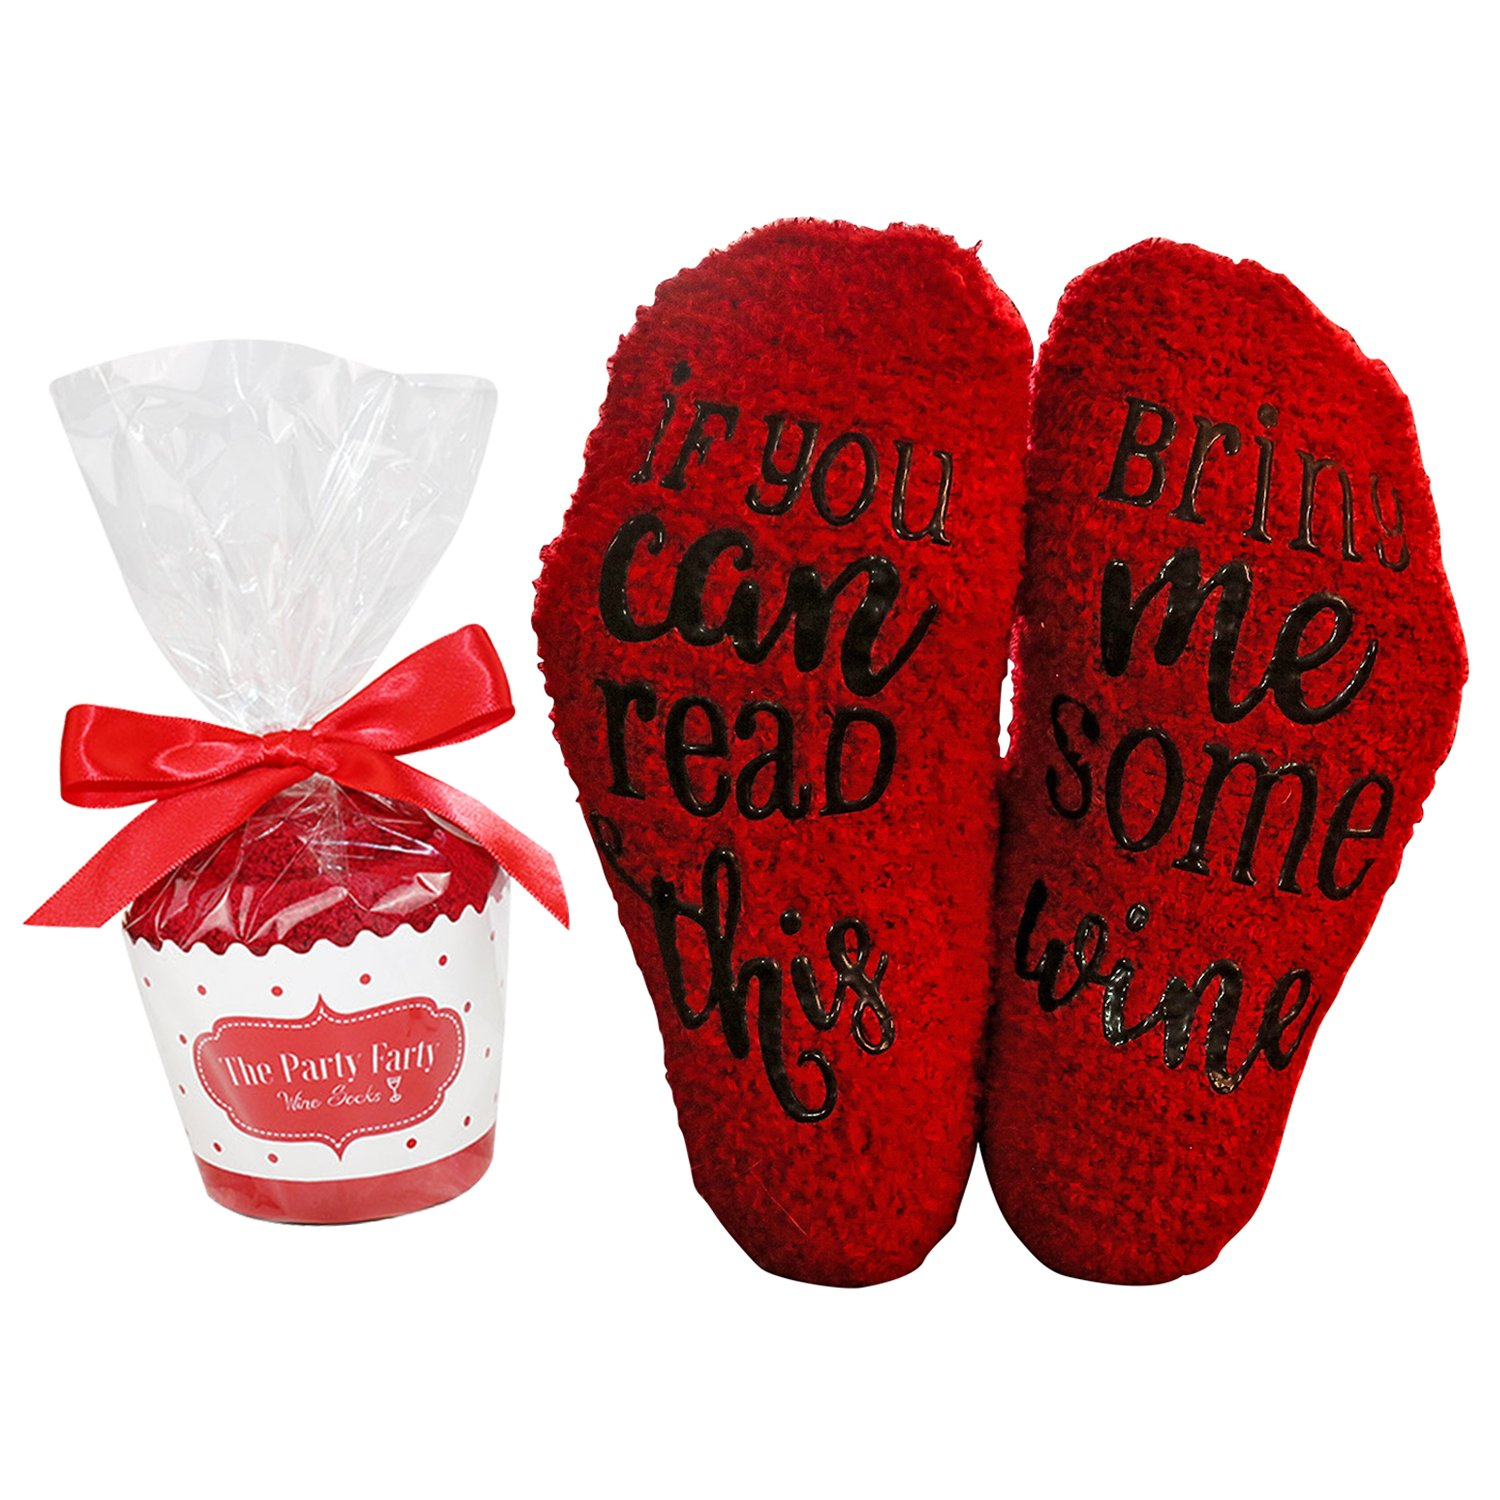 Wine Socks Red with Cupcake Gift Packaging: Wine lover Gifts for Women with If You Can Read This Bring Me Some Wine Luxury-Funny Wine Accessory for Her - Present for Wife and Women